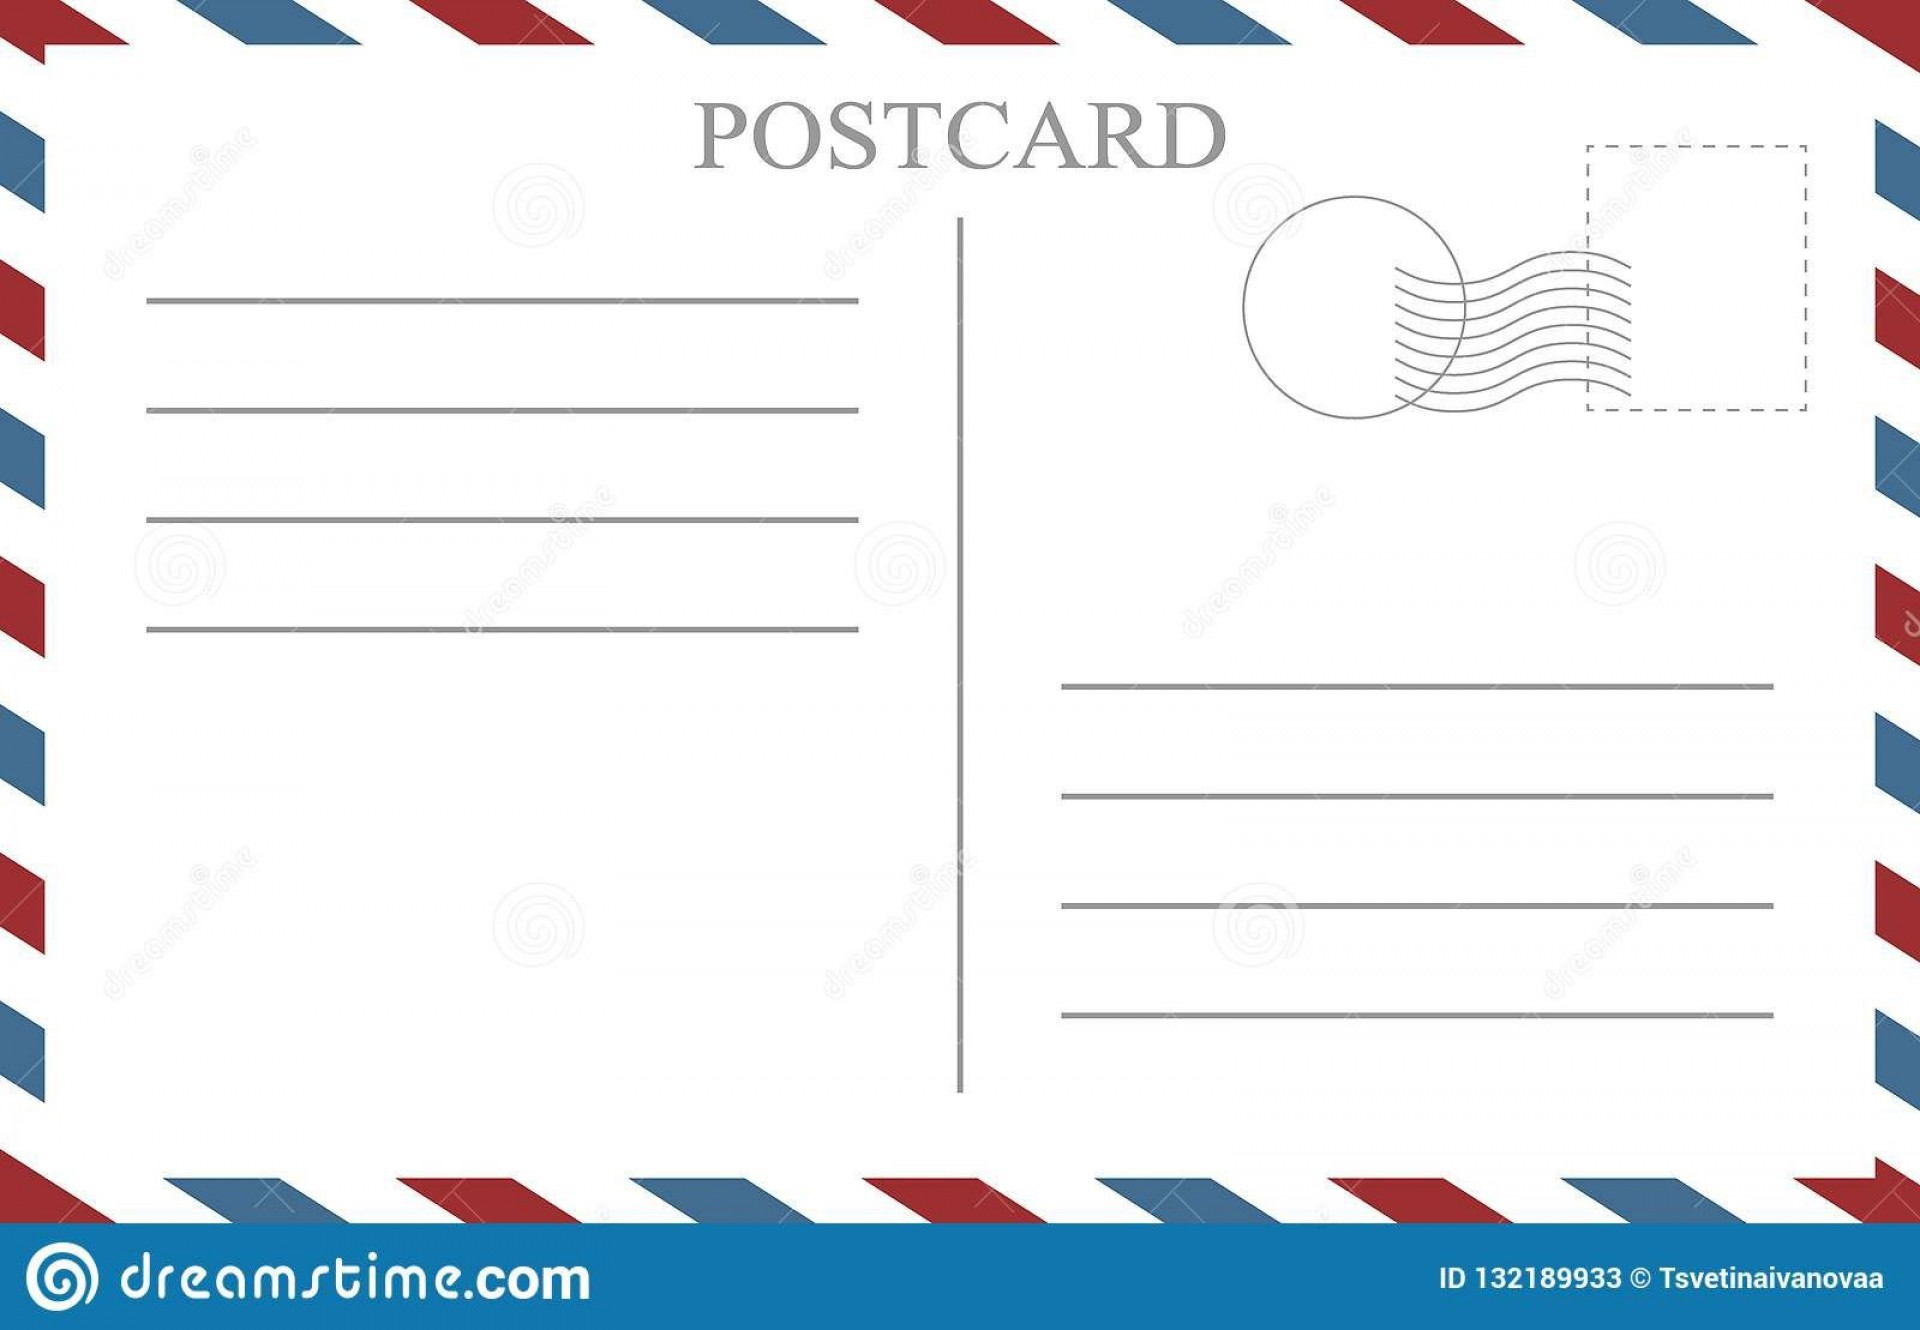 009 Impressive Postcard Front And Back Template Free Sample  To School1920